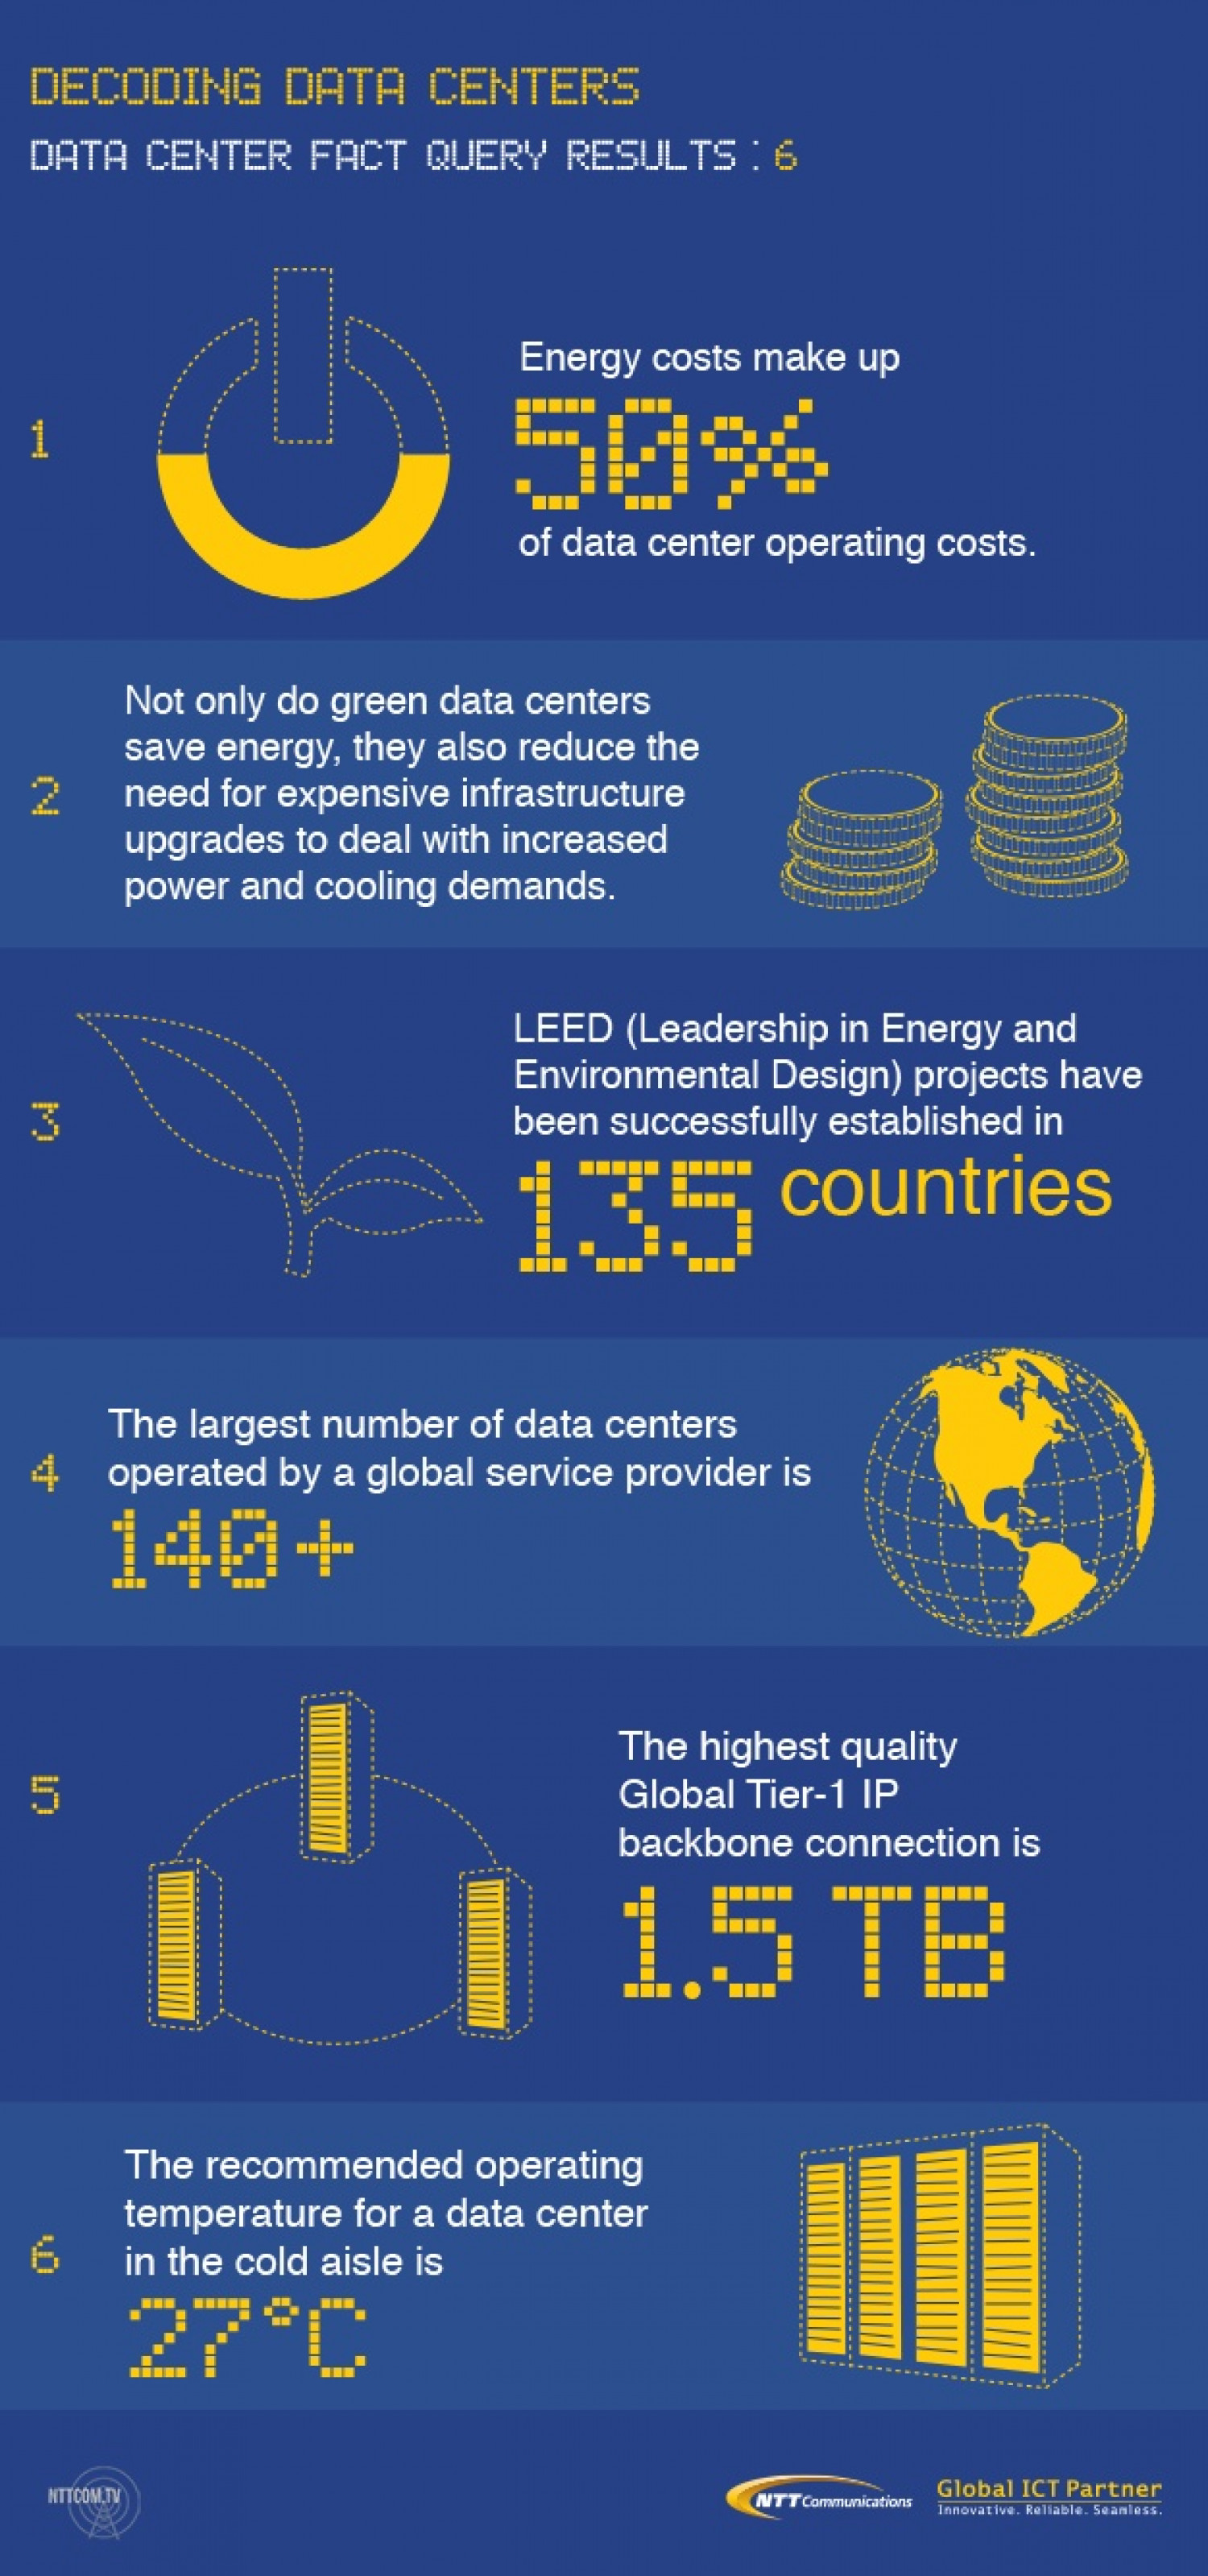 Data Center Trivia: 6 Facts You May Not Know Infographic